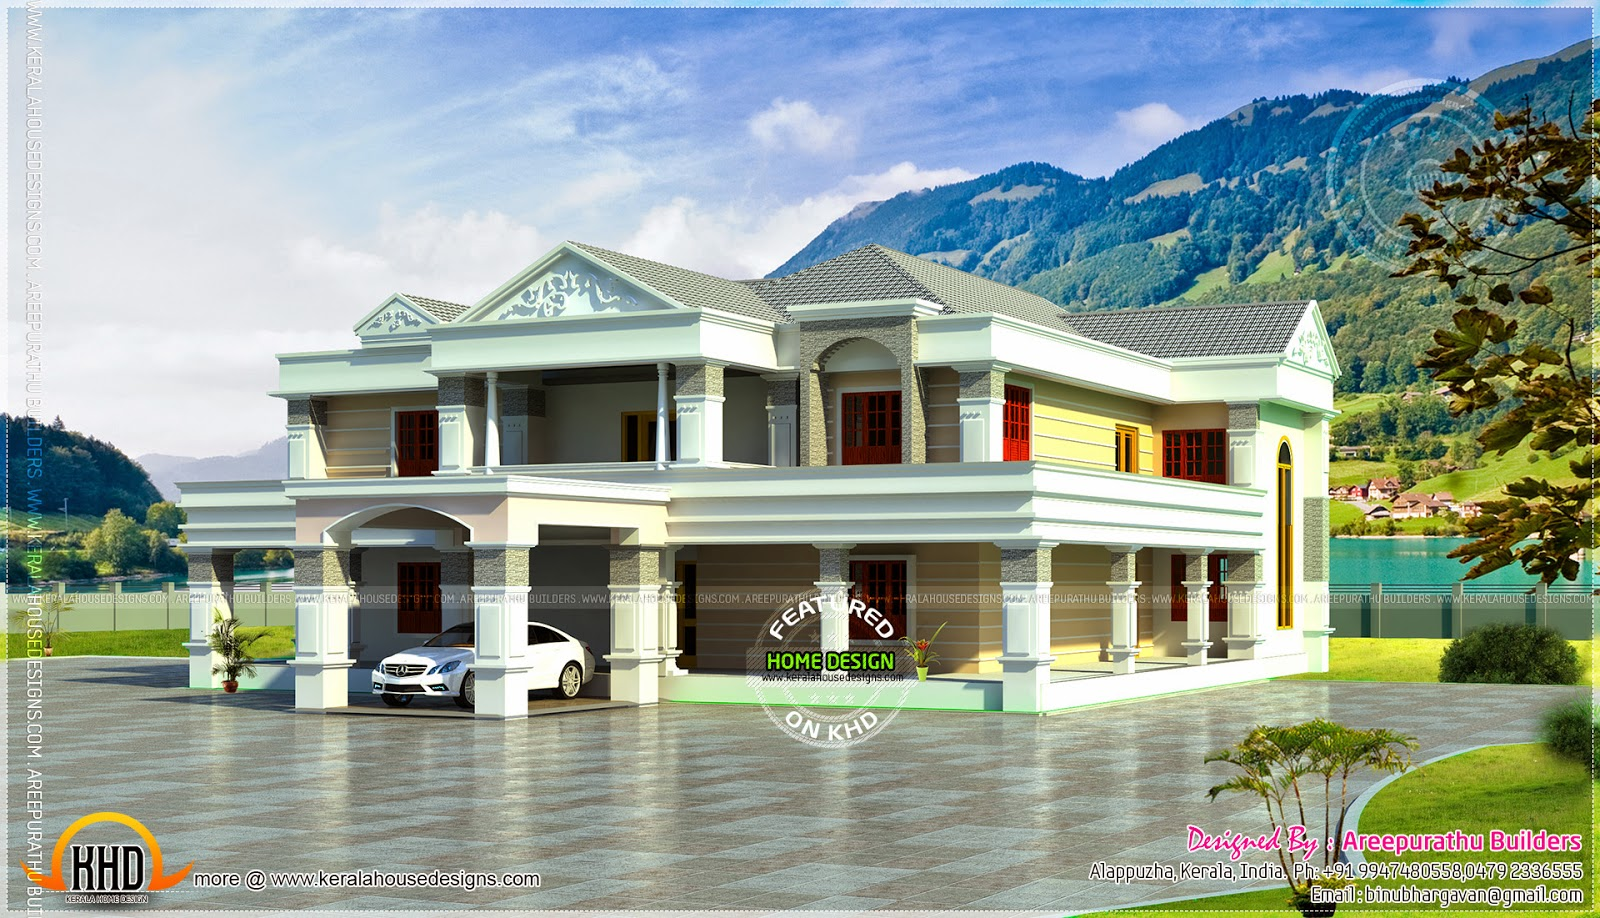 6 bhk super luxury home elevation kerala home design and for Luxurious home plans